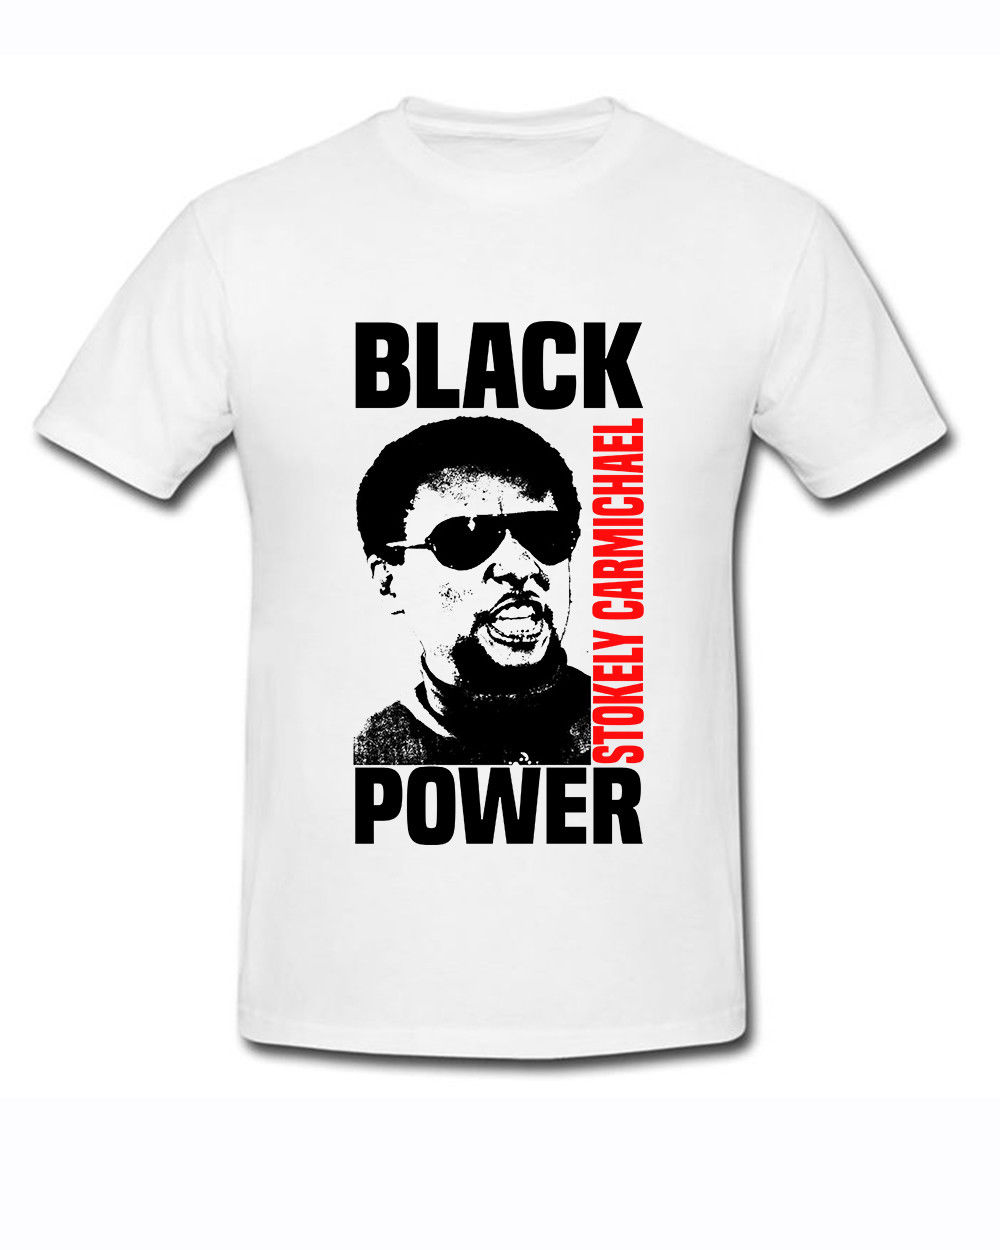 Stokely Carmichael-Black Power white Men T-shirt size S-3XL Cartoon Print Short Sleeve T Shirts Free Shipping